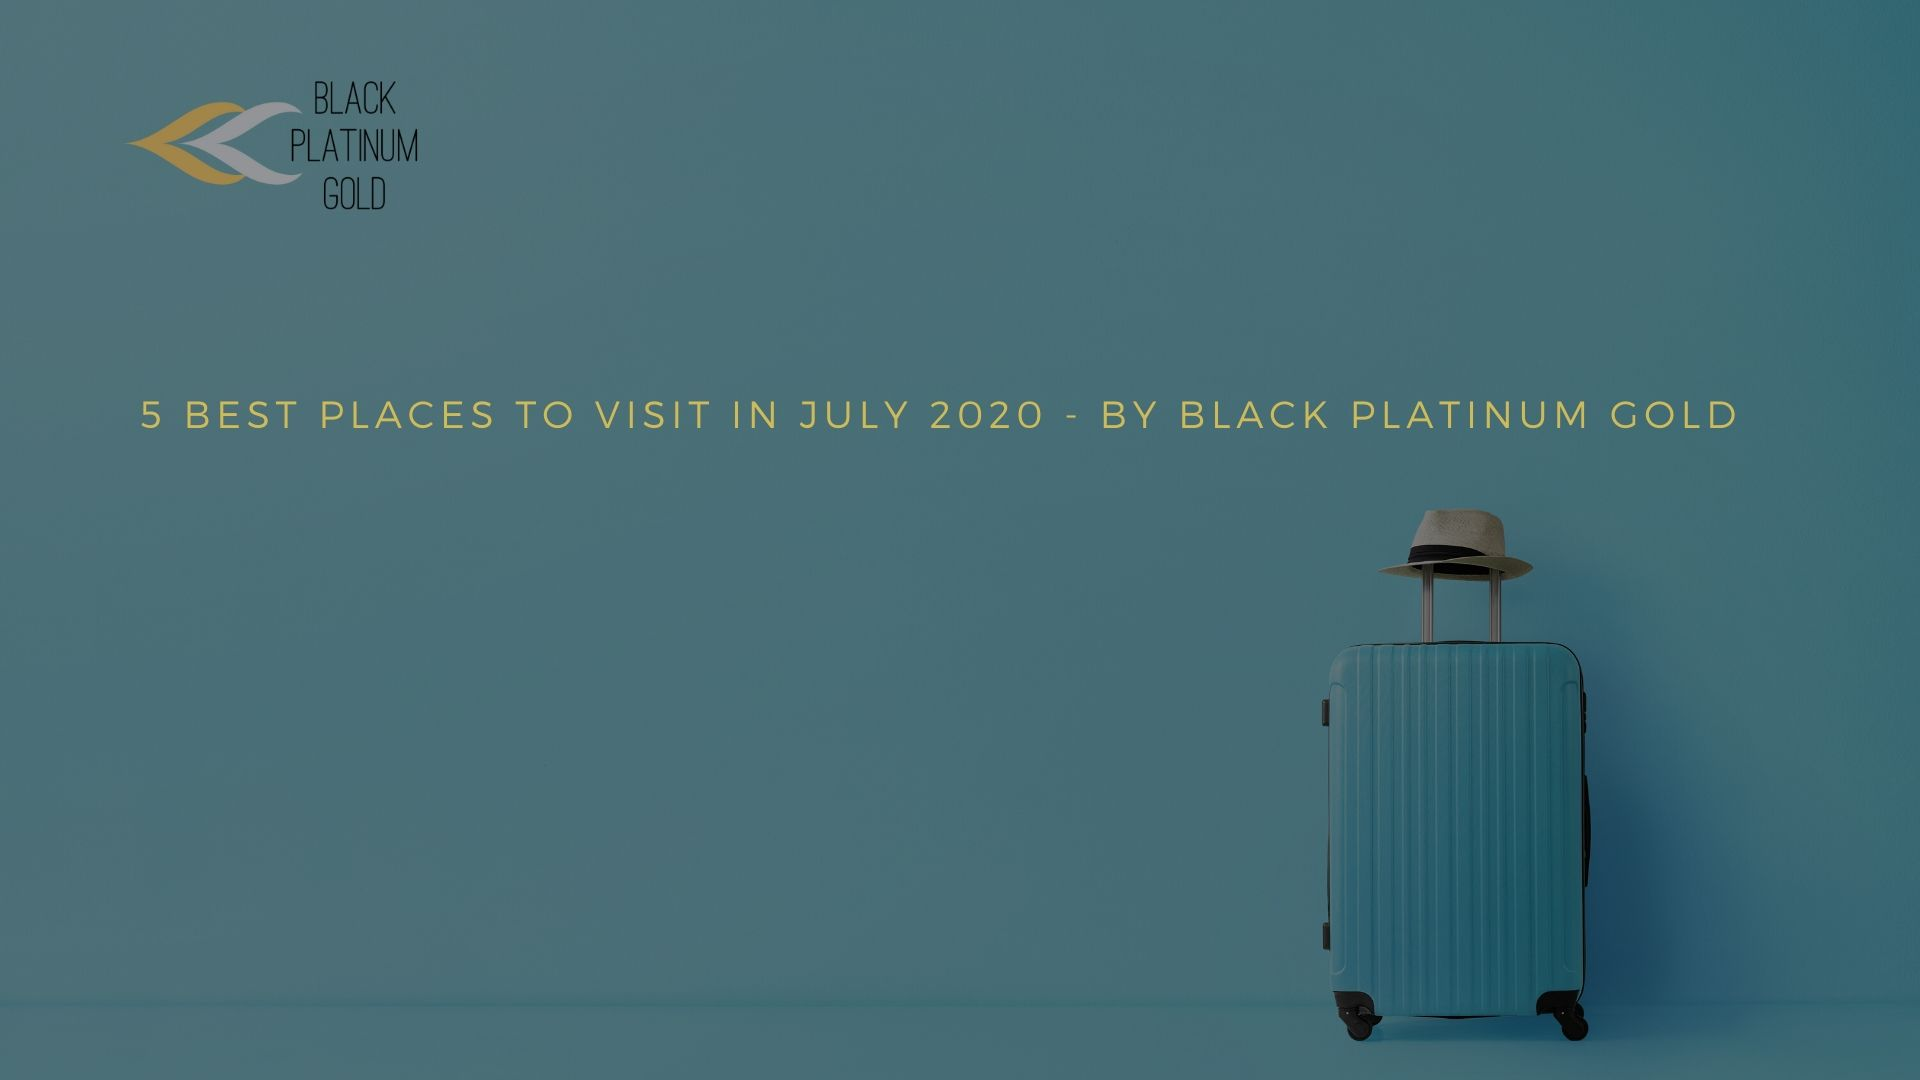 5 Best Places to visit in July 2020 - By Black Platinum Gold- black platinum gold(1)